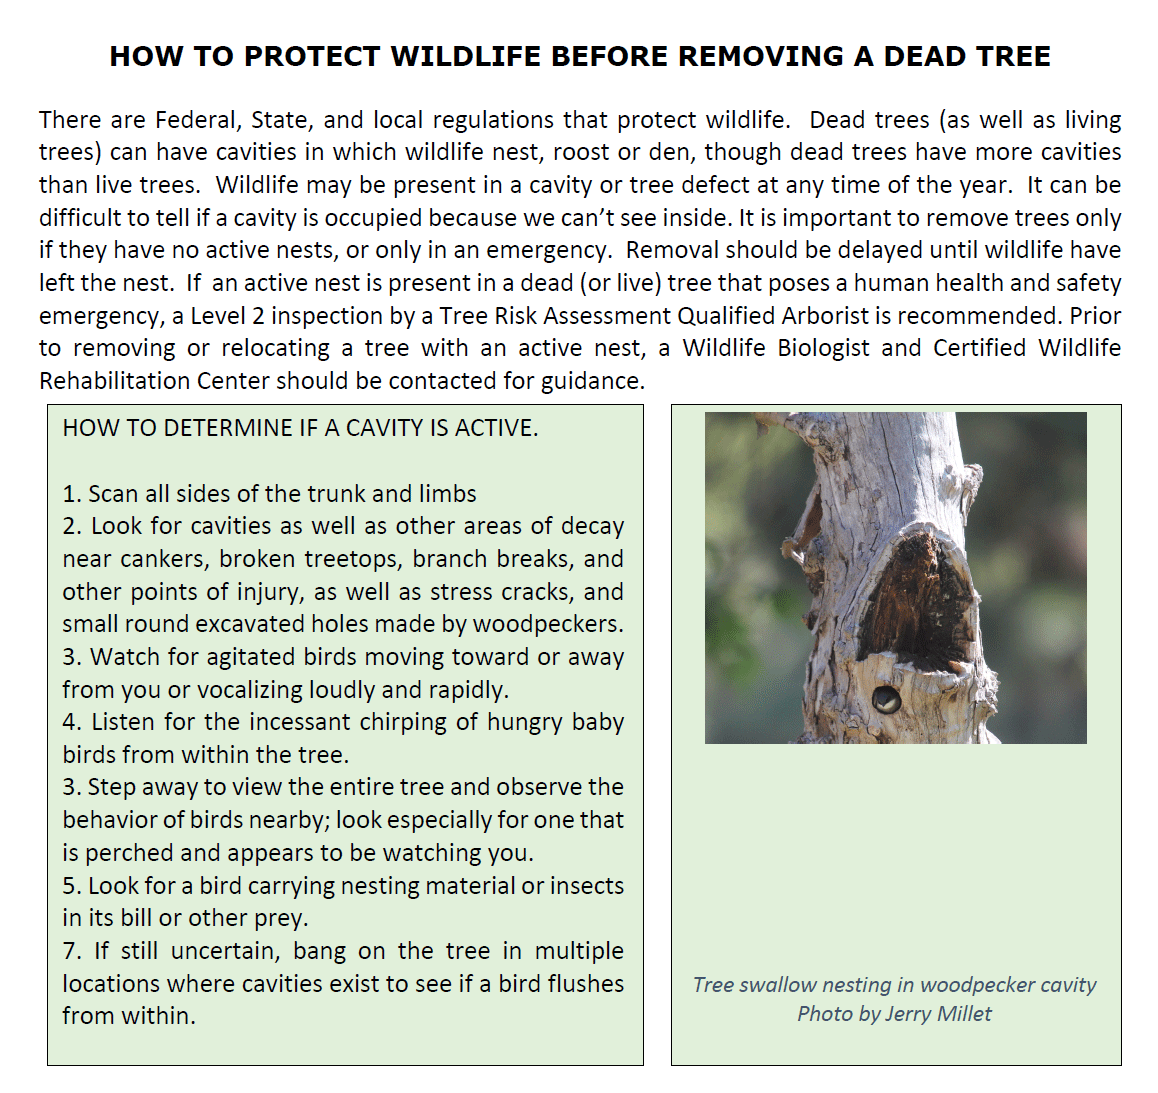 How to protect wildlife before removing a dead tree